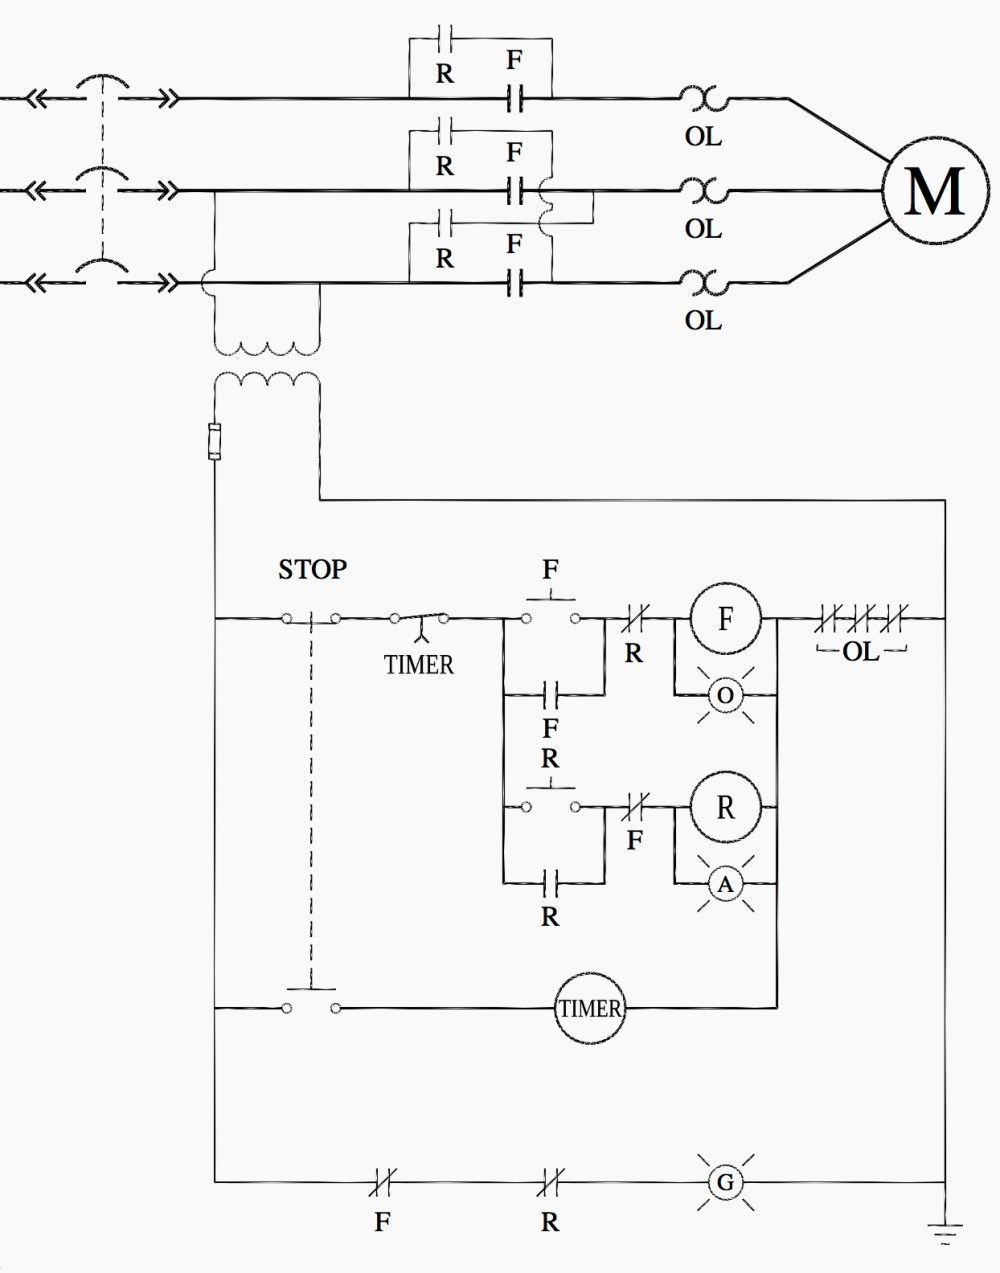 medium resolution of start stop wiring diagram motor relay ladder wiring diagram inspirationa motor starter wiring diagram start